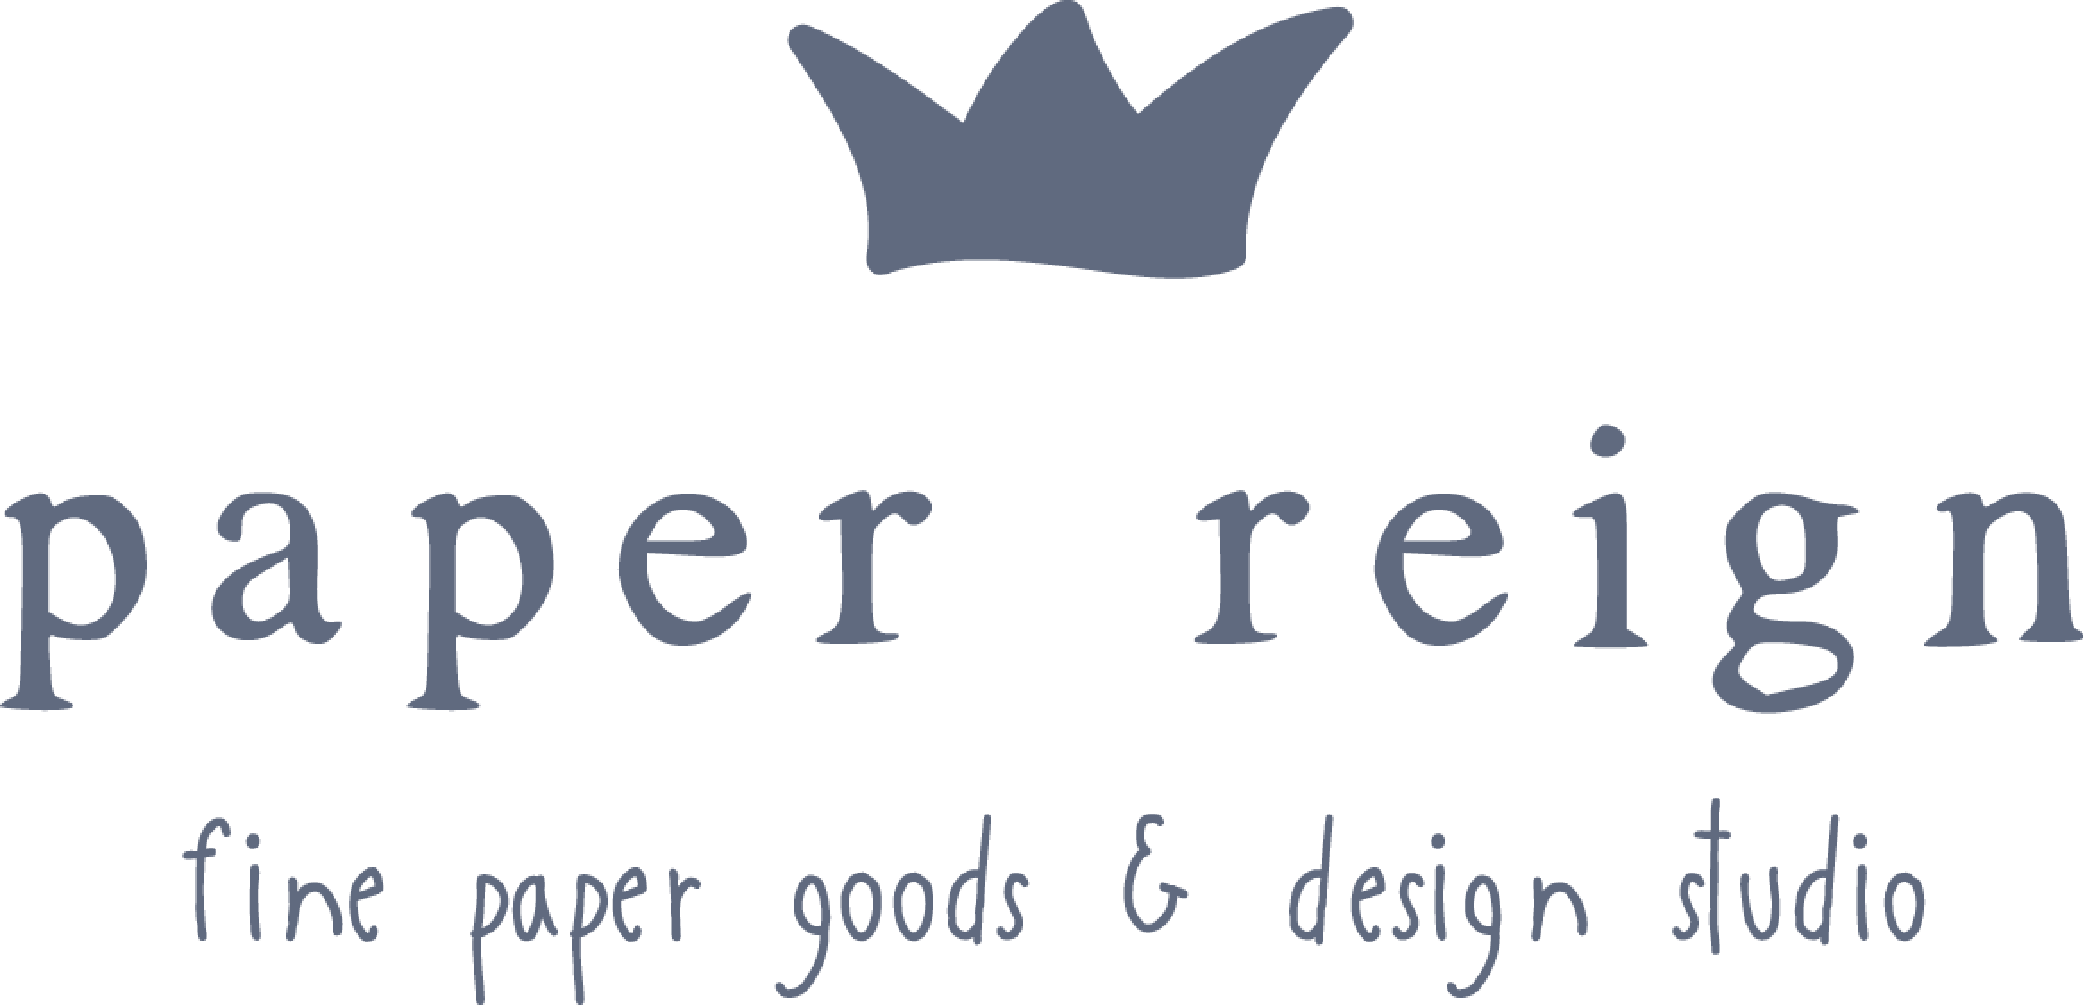 paper reign design studio - What a brilliant experience working with Wordfetti has been! I recently decided to hire a professional copywriter and I'm so glad I found Wordfetti. It has been an absolute pleasure working with Anita and I can't thank her enough.She was so patient and encouraging when getting to know my business and the Service Agreement she put together for me really impressed me. I found Anita to be professional and excellent at writing yet super friendly and kind when working with me, she had a real enthusiasm to get an understanding of me and my business. She was determined to get my document to a point where I was happy and confident with it and her expertise in doing this really blew me away.Being located on the other side of Australia, I have not yet had he pleasure of meeting with Anita, however working with her was not hindered by being interstate and her communication was fantastic. I recommend Wordfetti to anyone who needs help with copywriting, I think they would be a real asset to your business. I look forward to working with Anita again in the near future and would not hesitate in choosing Wordfetti to help me with my copywriting. Thank you Anita